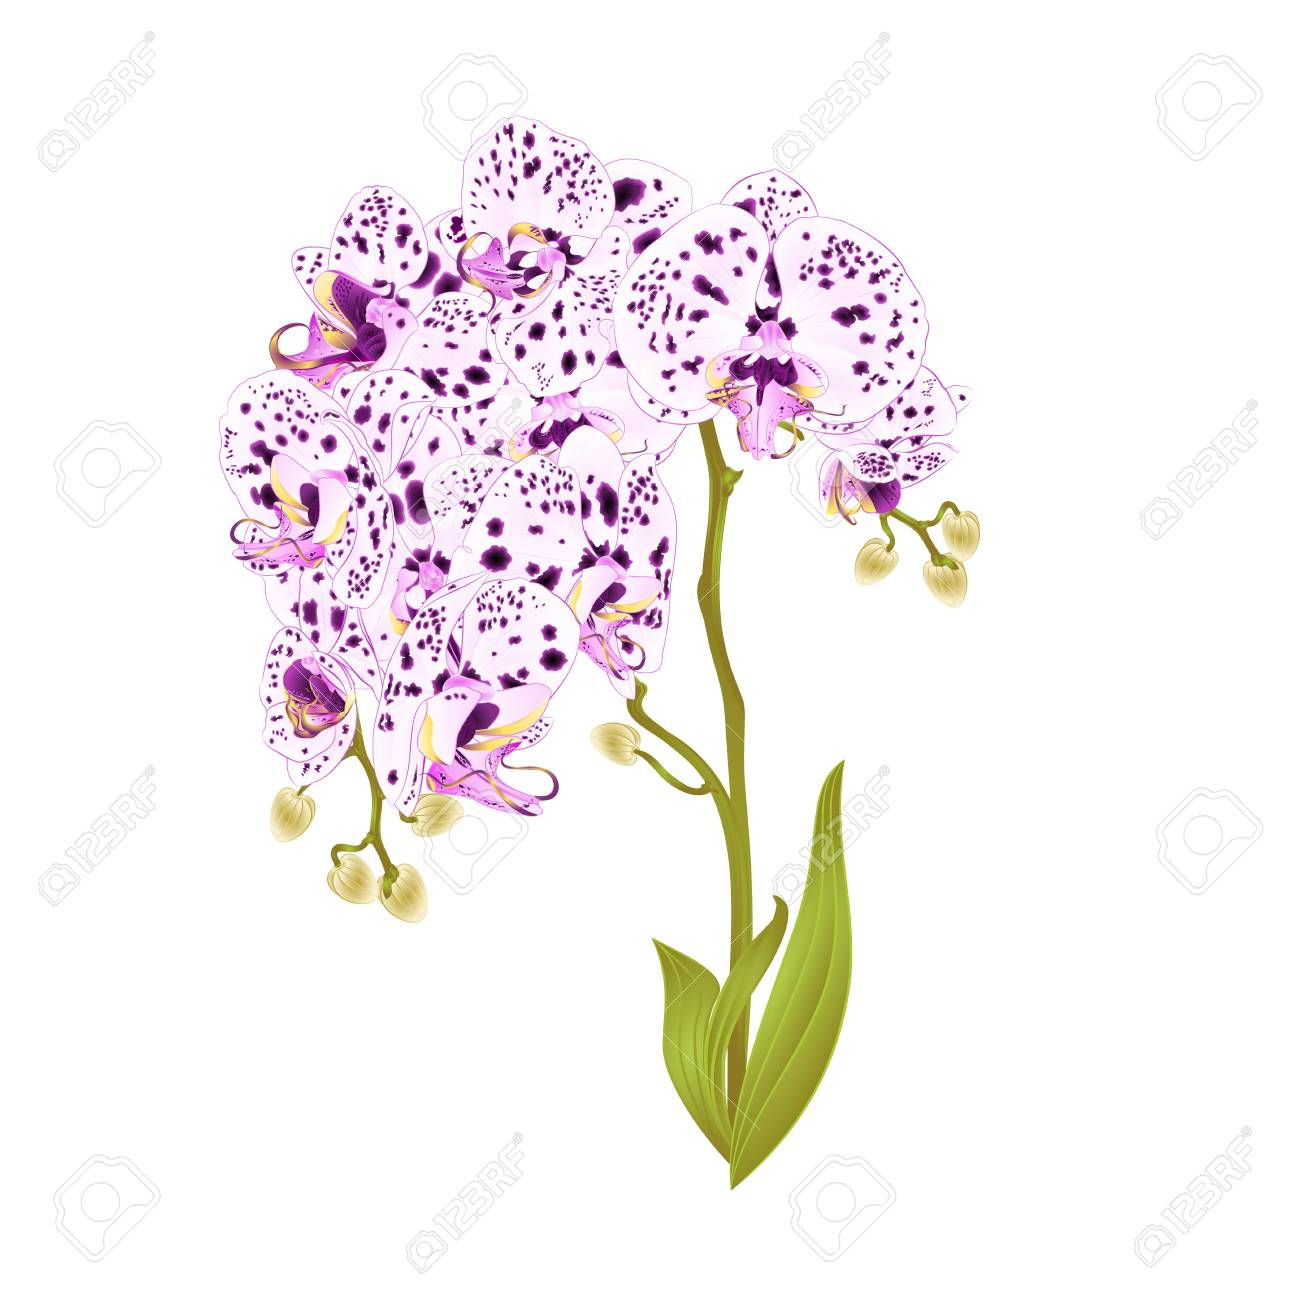 Branches Of Orchid Phalaenopsis With Dots Of Purple And White